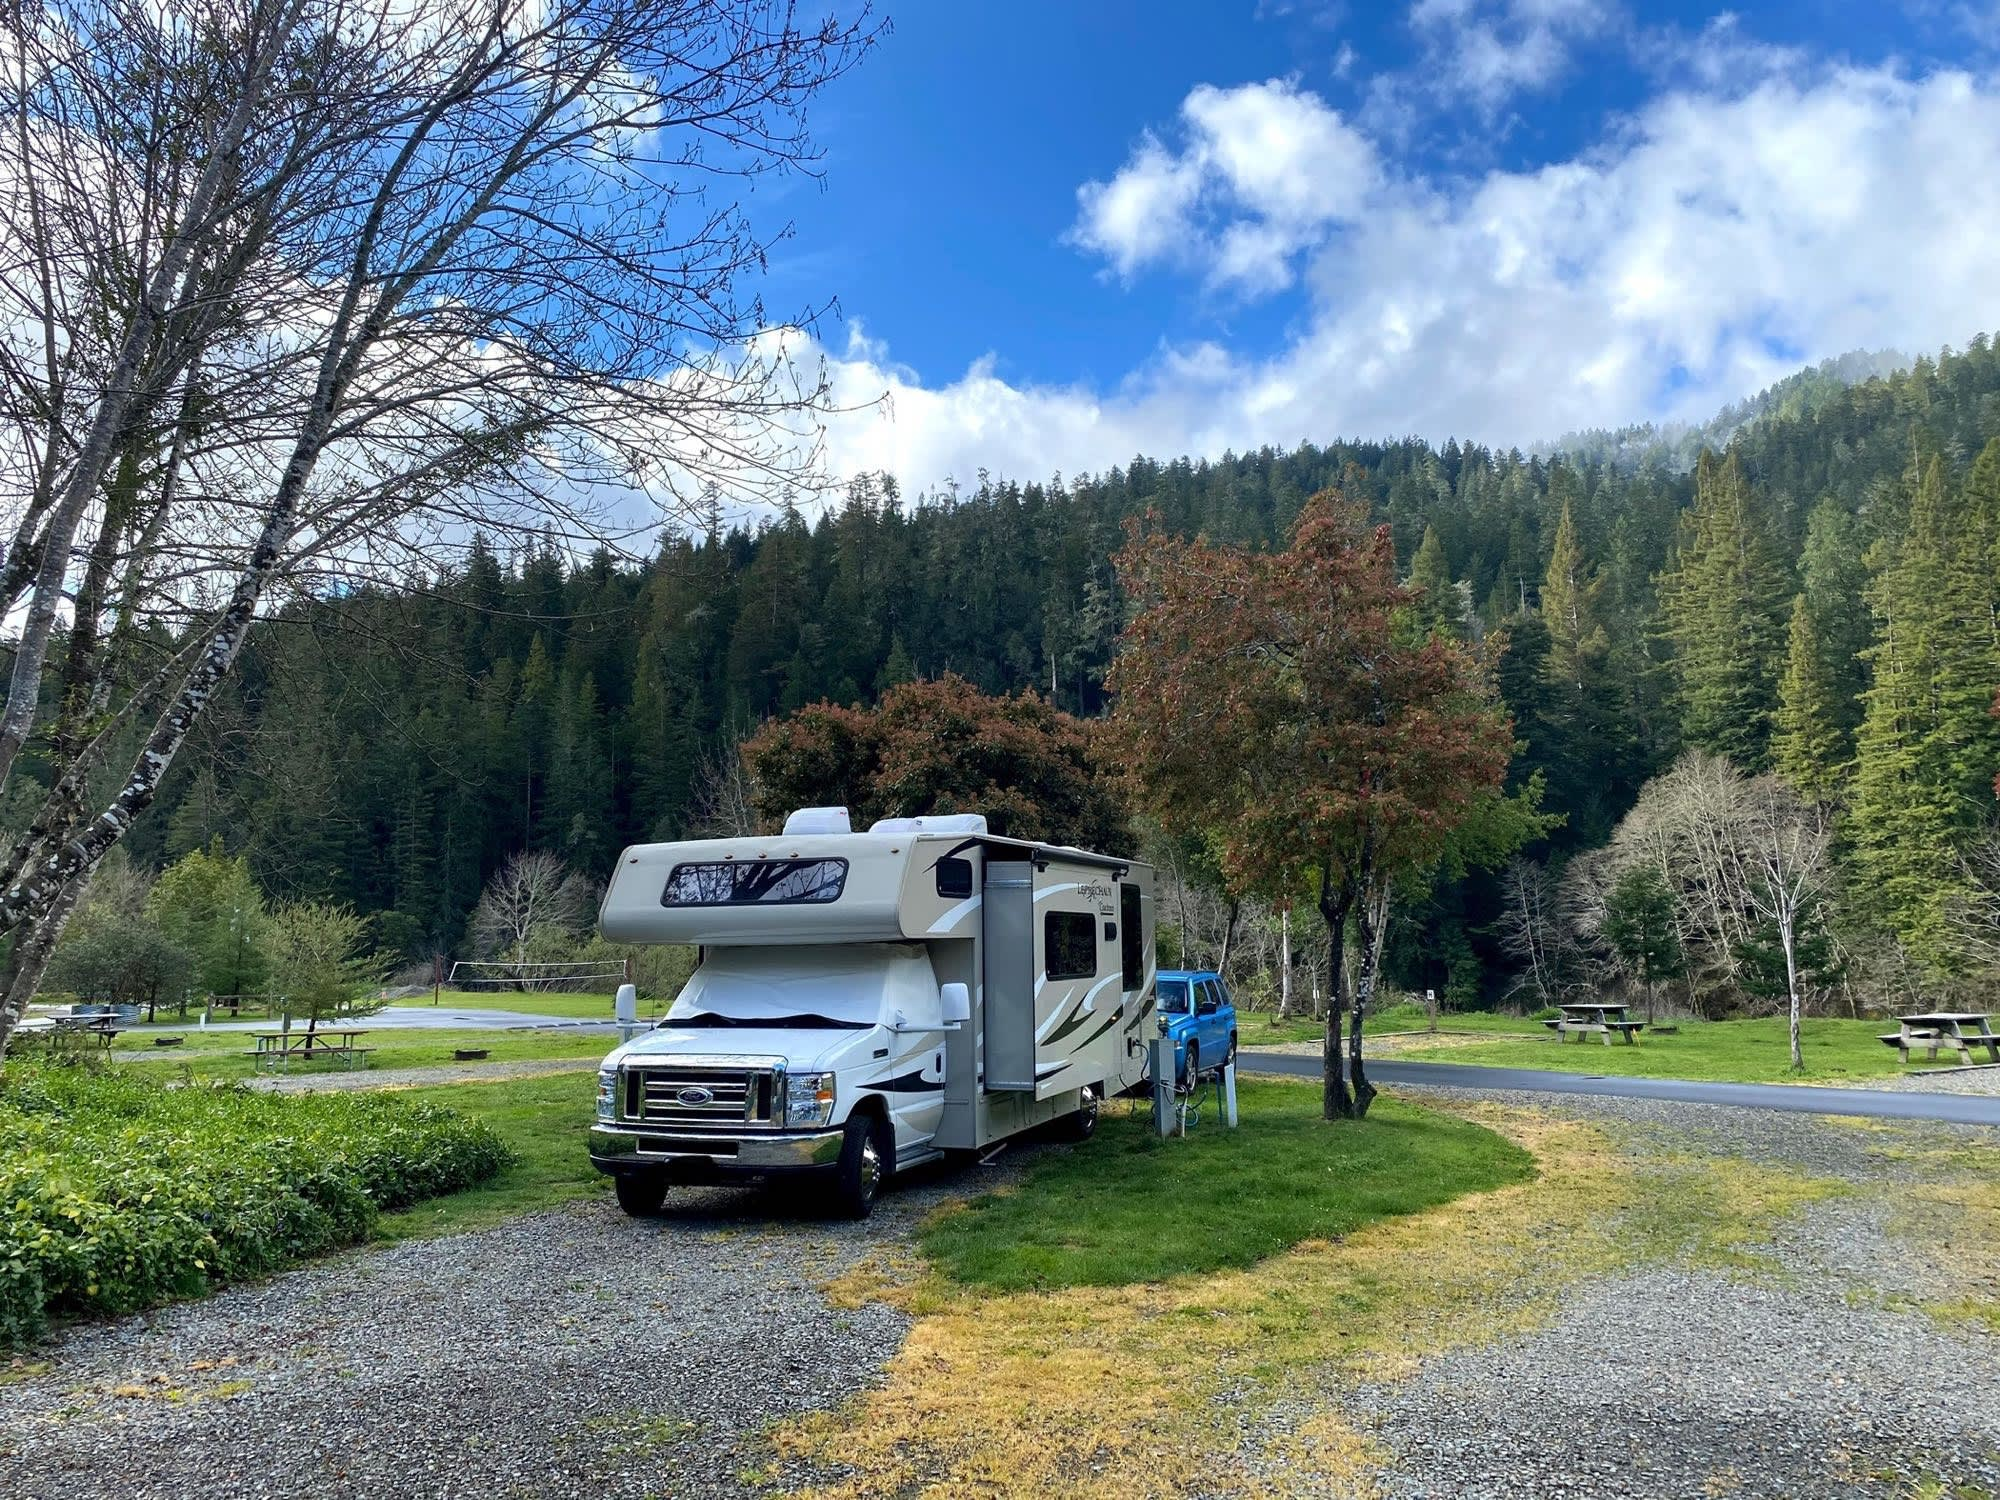 This renter submitted photo was taken at a campground near the Avenue of the Giants.. Coachmen Leprechaun 2015